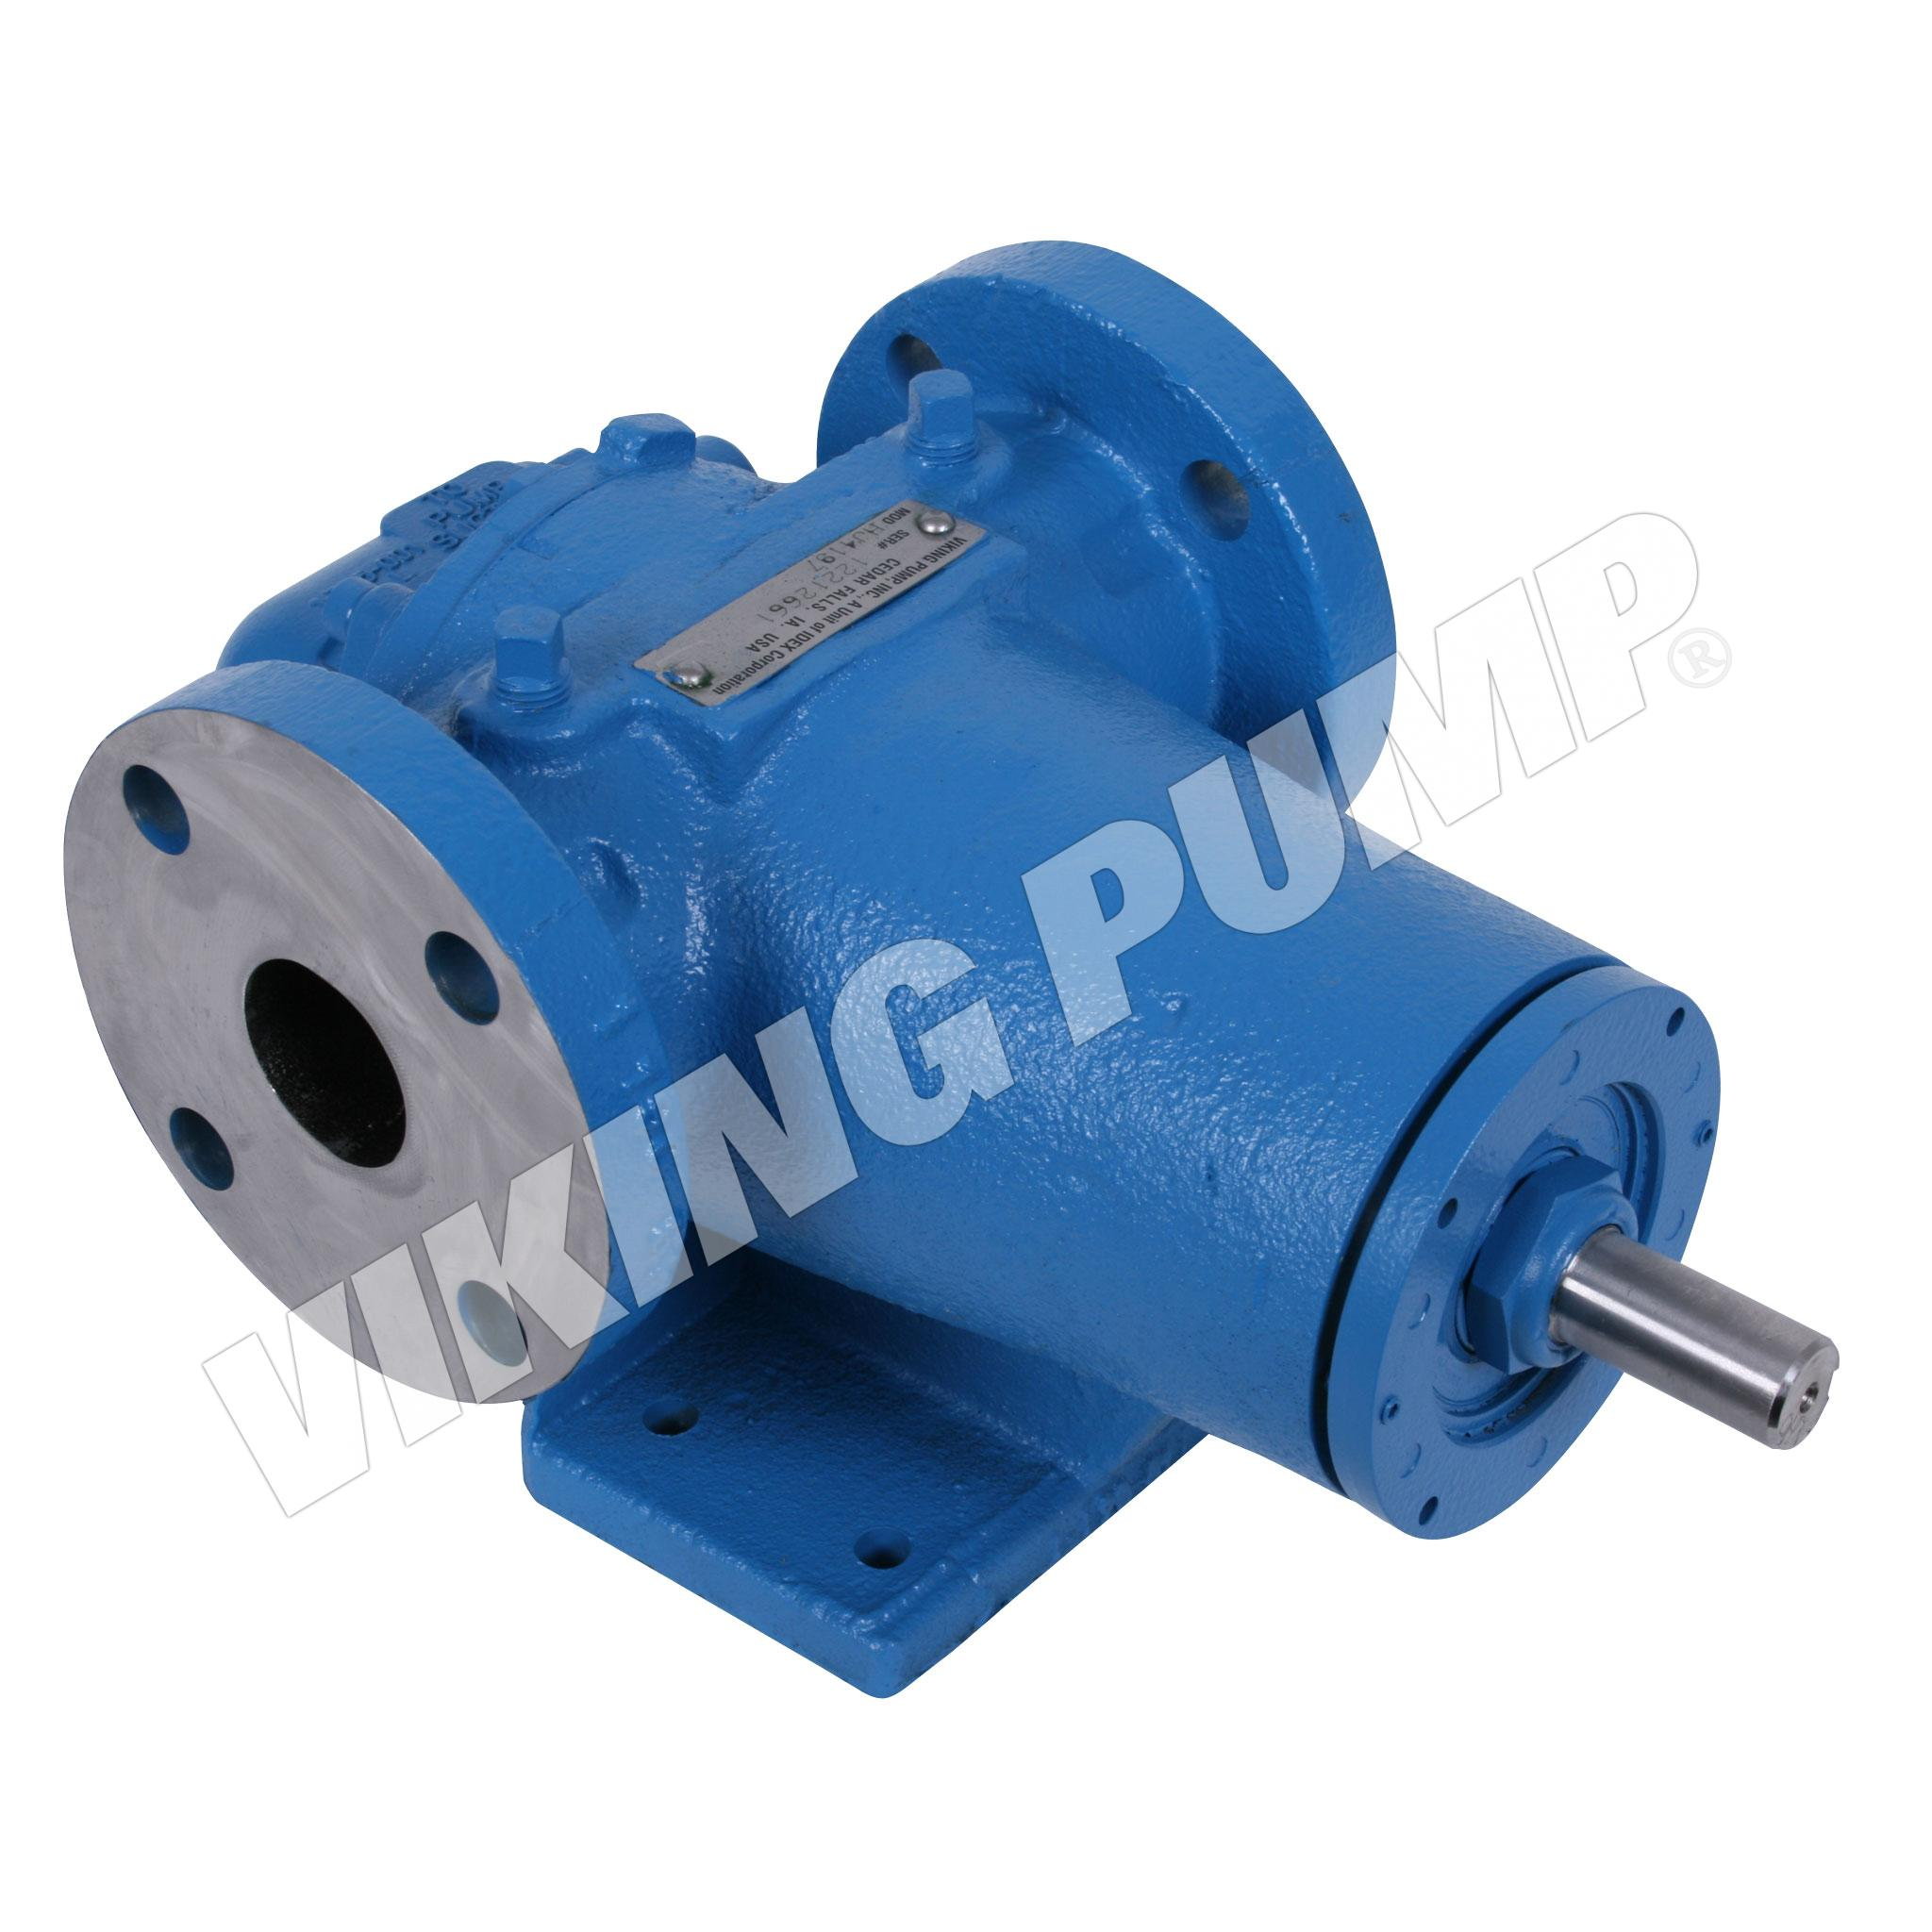 Model HJ4197, Foot Mounted, Mechanical Seal, Relief Valve Pump